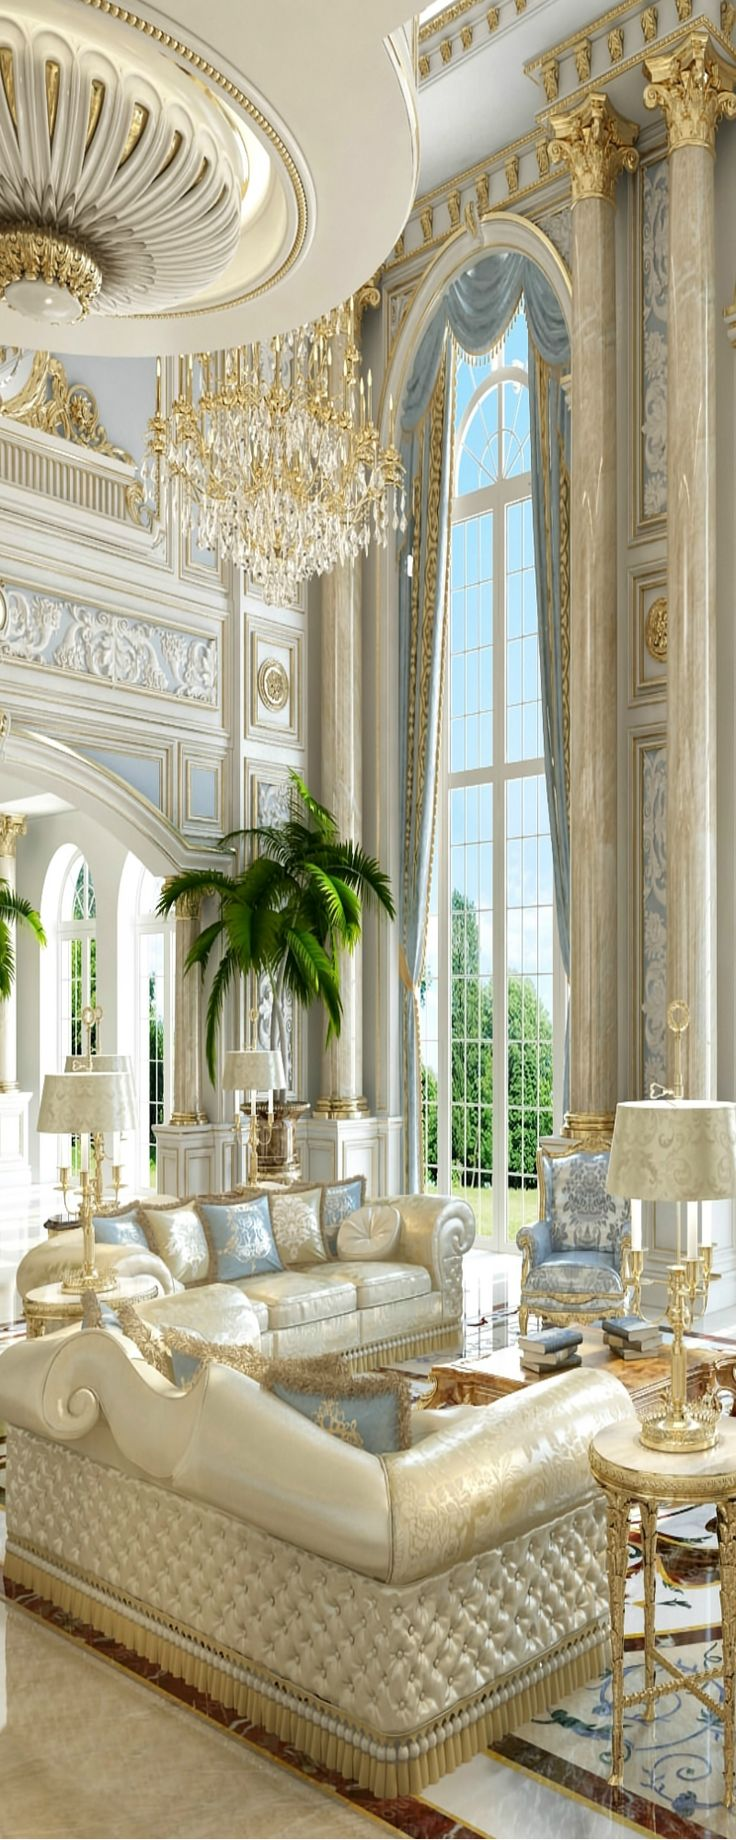 Rosamaria G Frangini   Architecture Luxury Interiors   Lux Interiors    Antonovich Luxury Design. 25  Best Ideas about Luxury Interior Design on Pinterest   Luxury